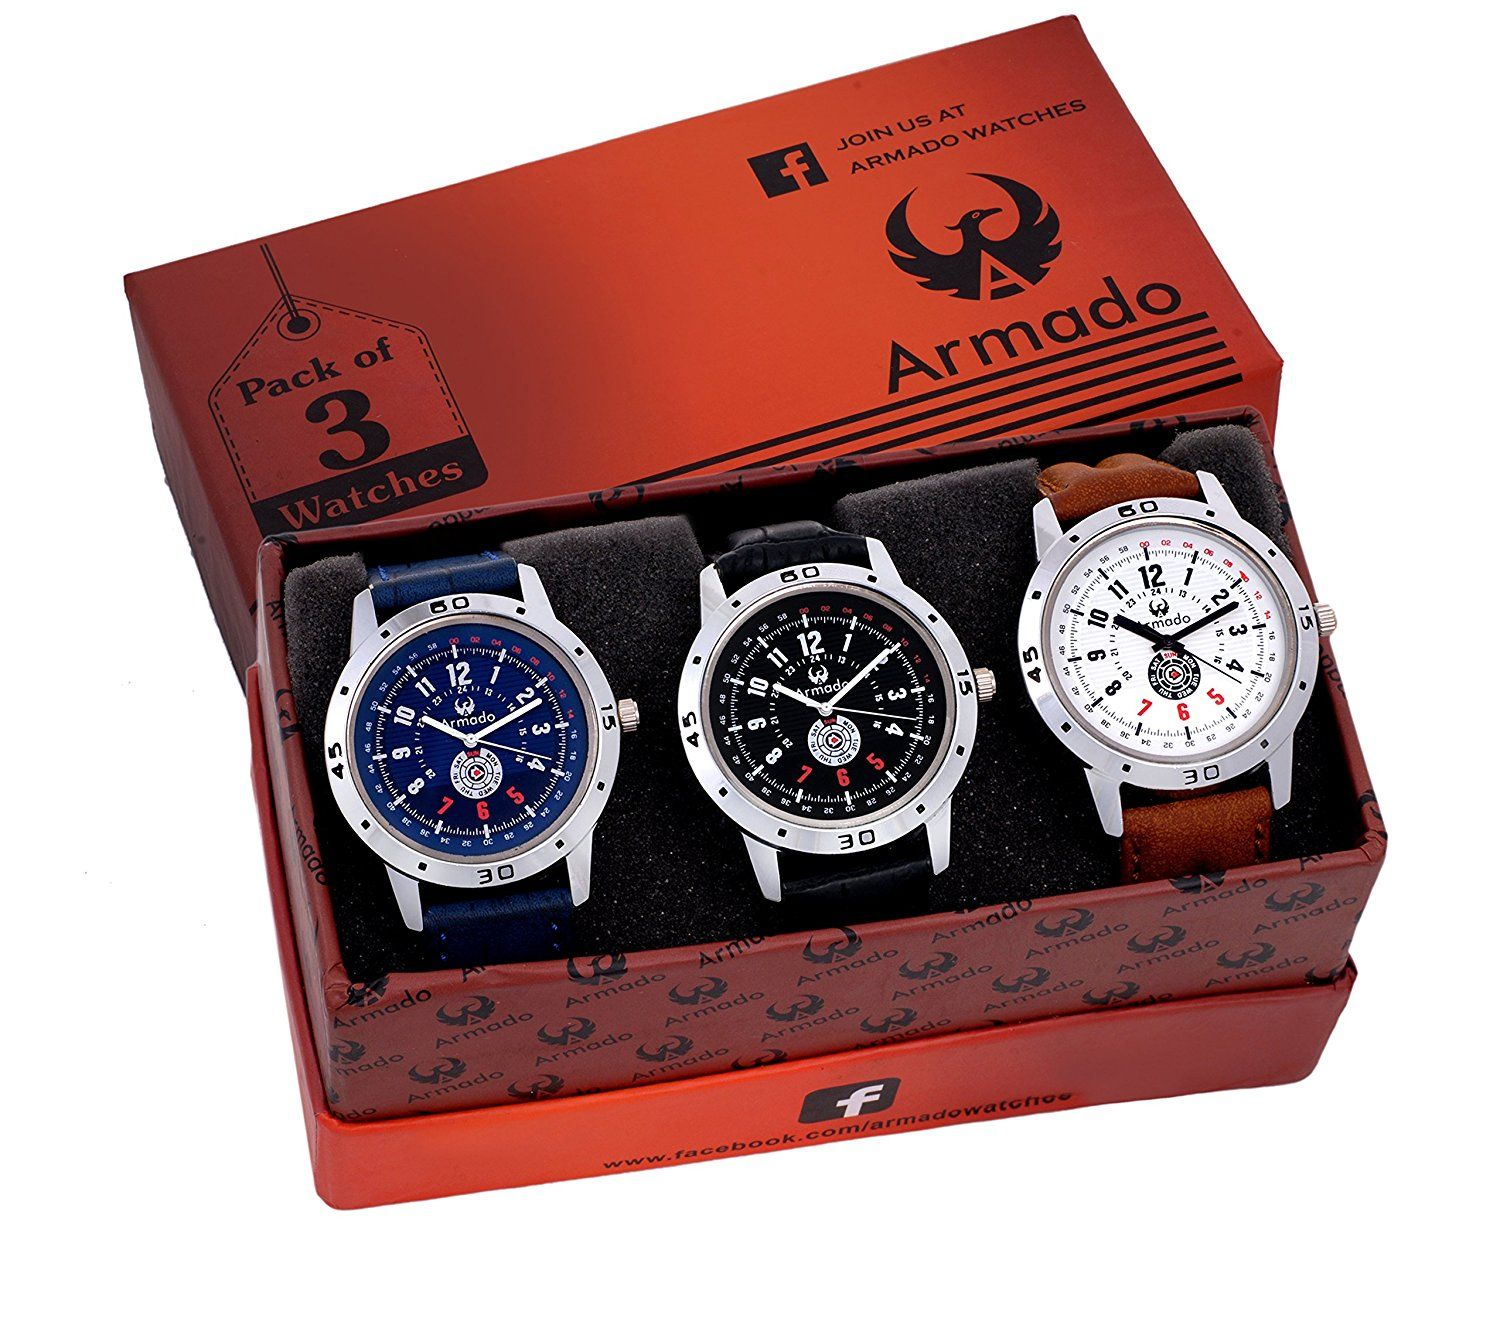 Armado Combo Pack Of 3 Analogue Blue, Black Dial Mens Watch-Ar-621251    Watches   Watches, Watches for men, Luxury watches for men 6c445e994d